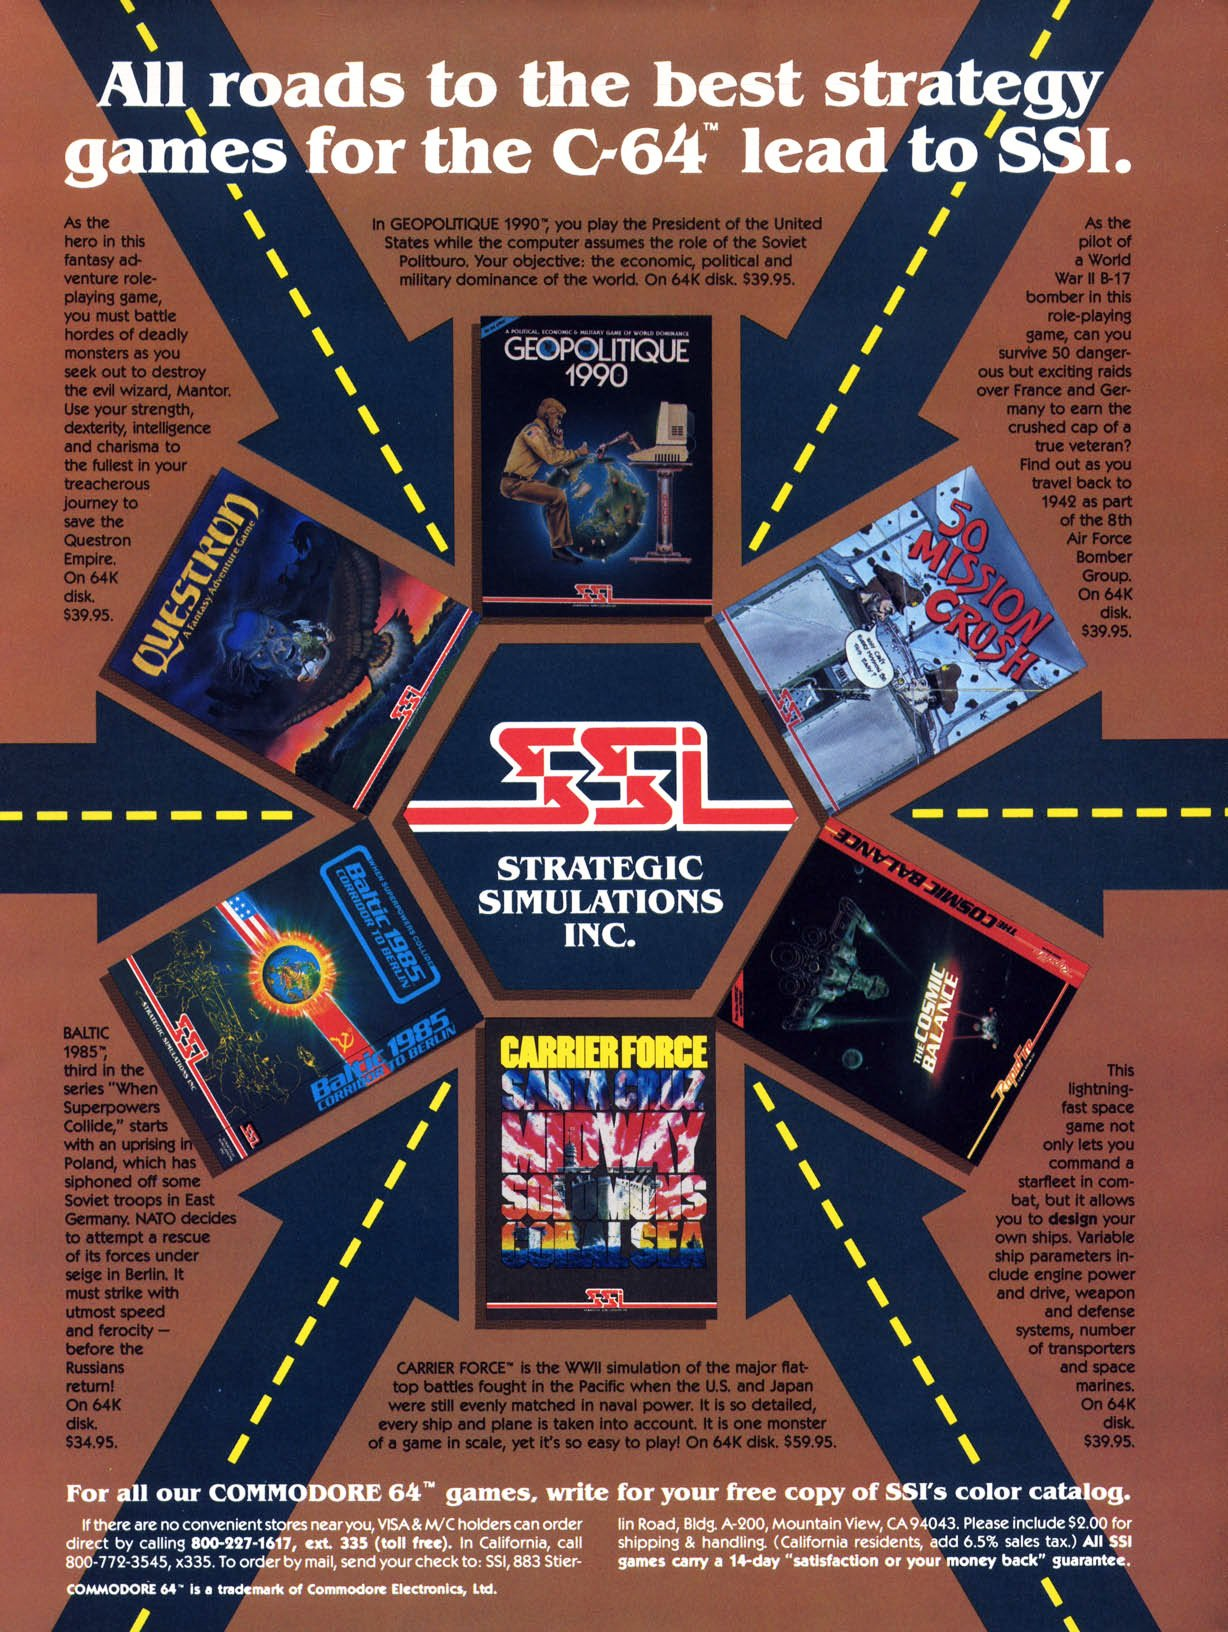 Questron, Geopoitique 1990, 50 Mission Crush, Baltic 1985, Carrier Force, The Cosmic Balance